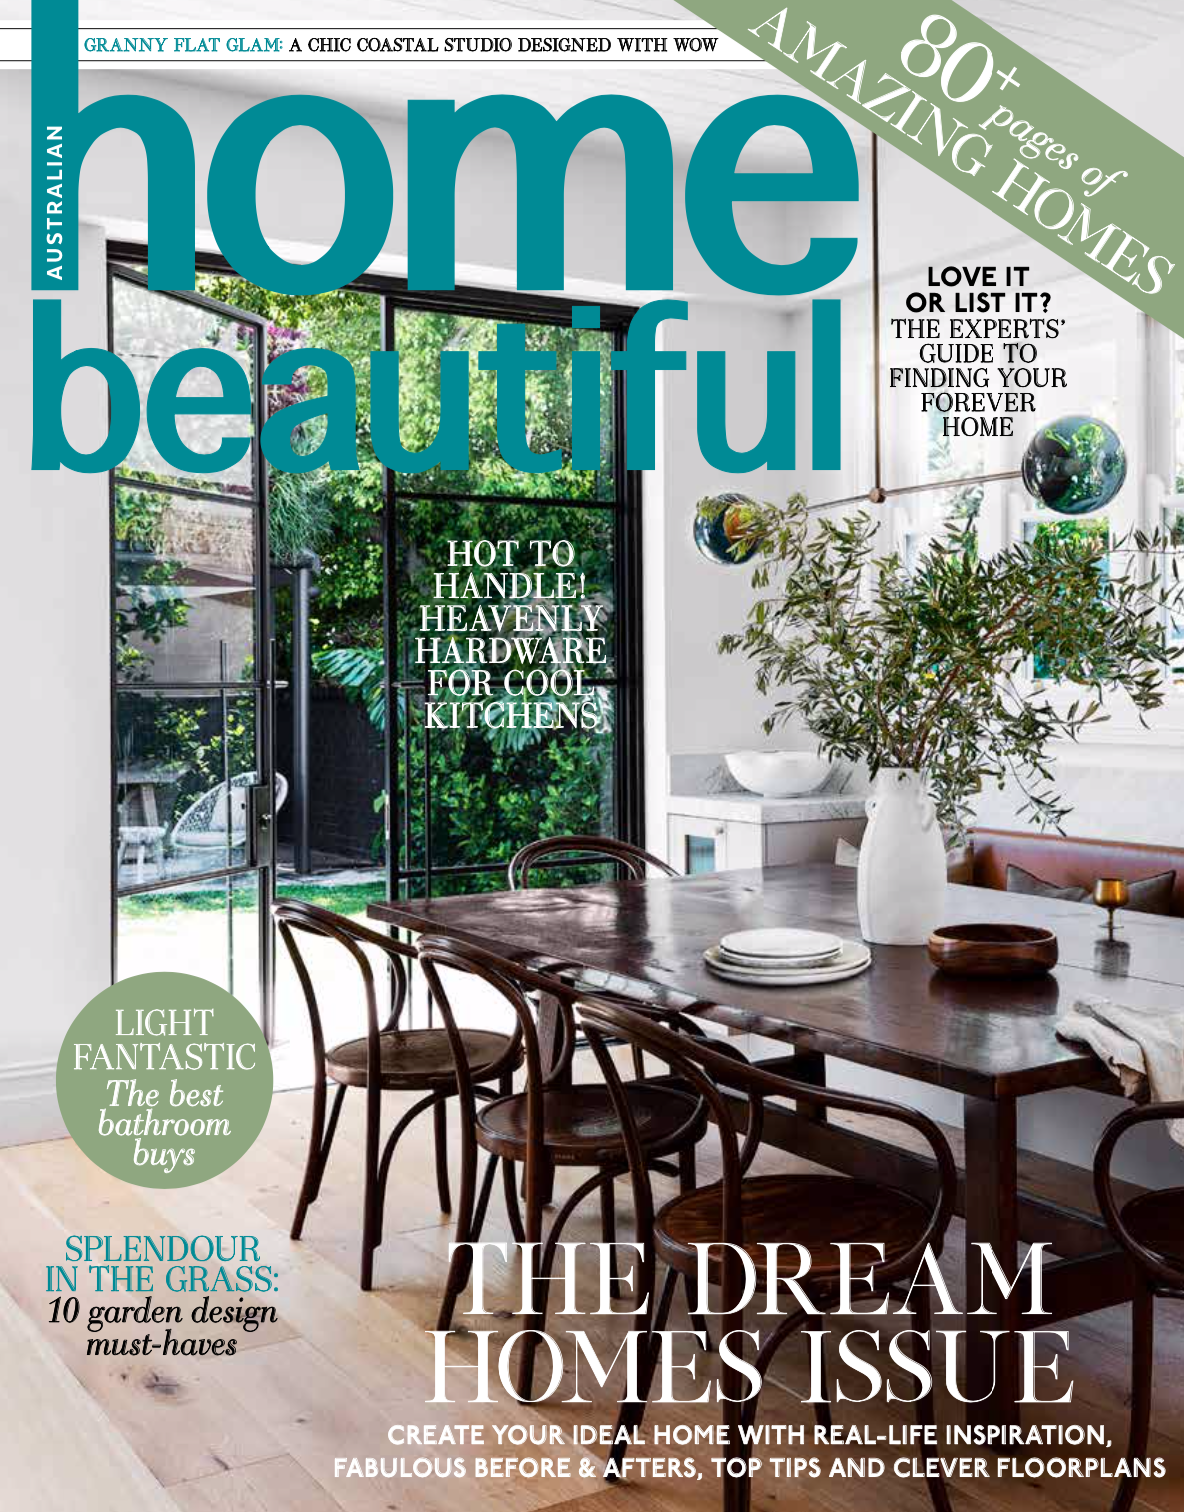 Editorial styling and feature writing for Home Beautiful with photography by Simon Whitbread